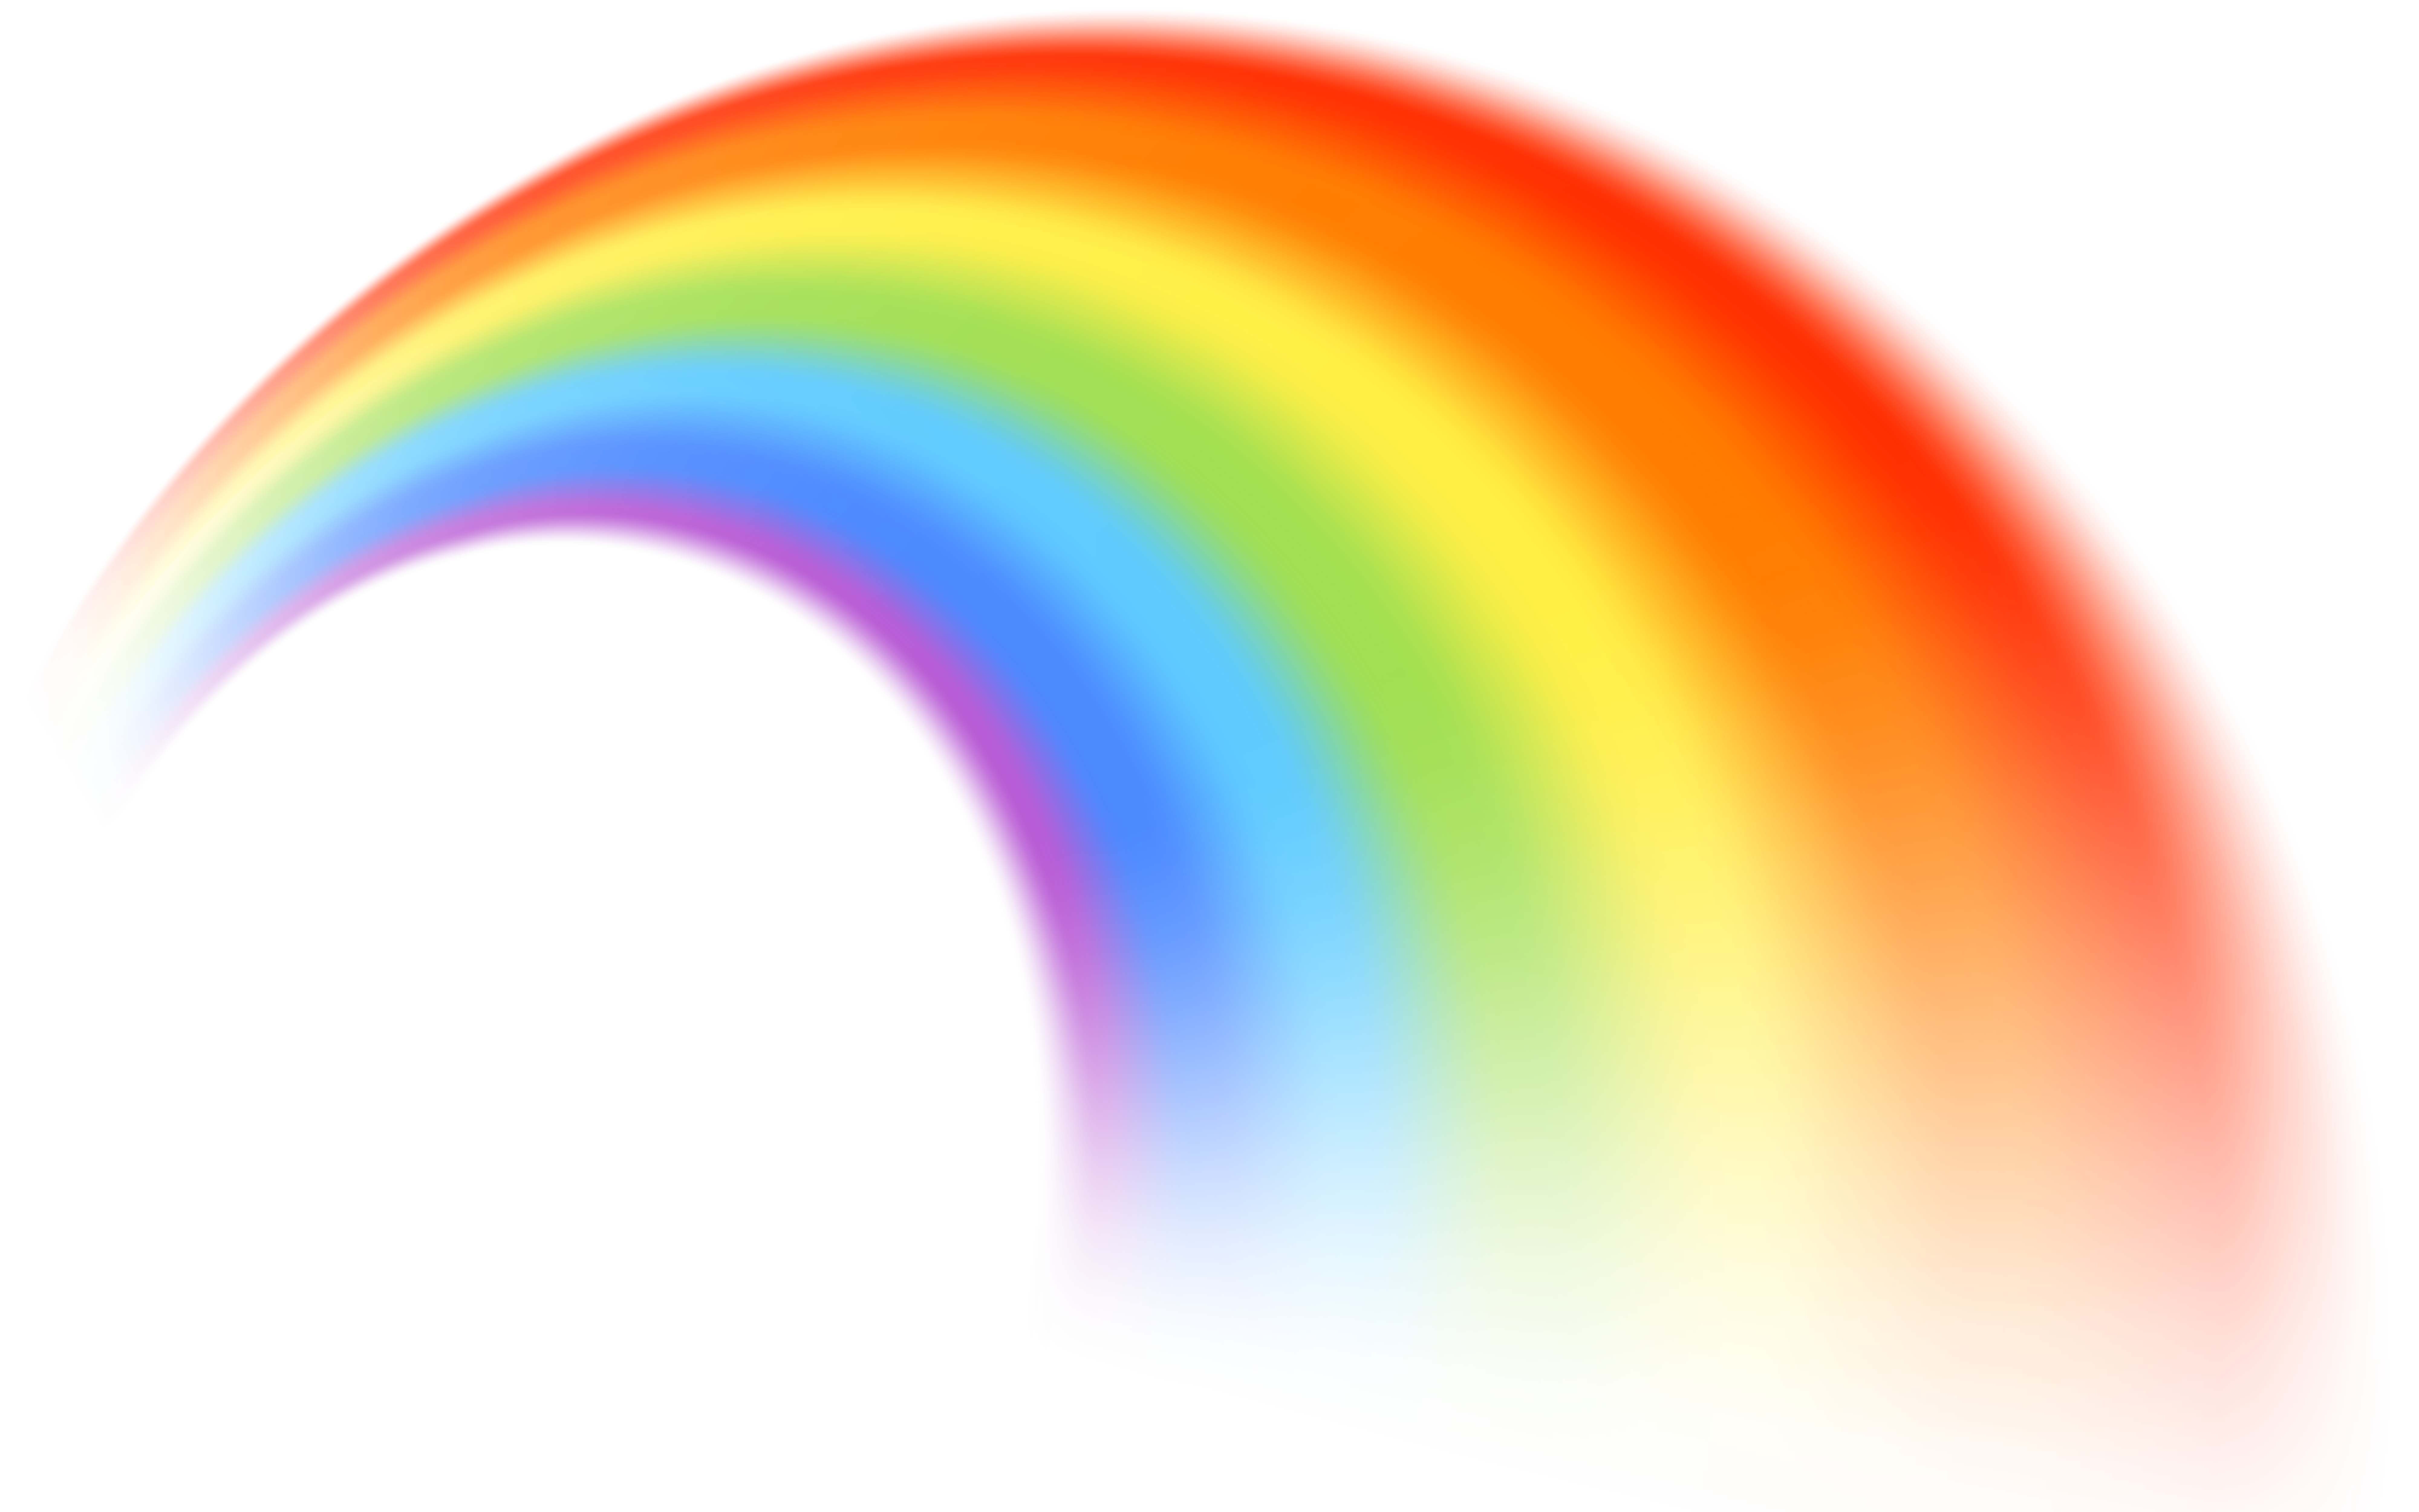 Wallpaper Of Rainbow Posted By Christopher Simpson